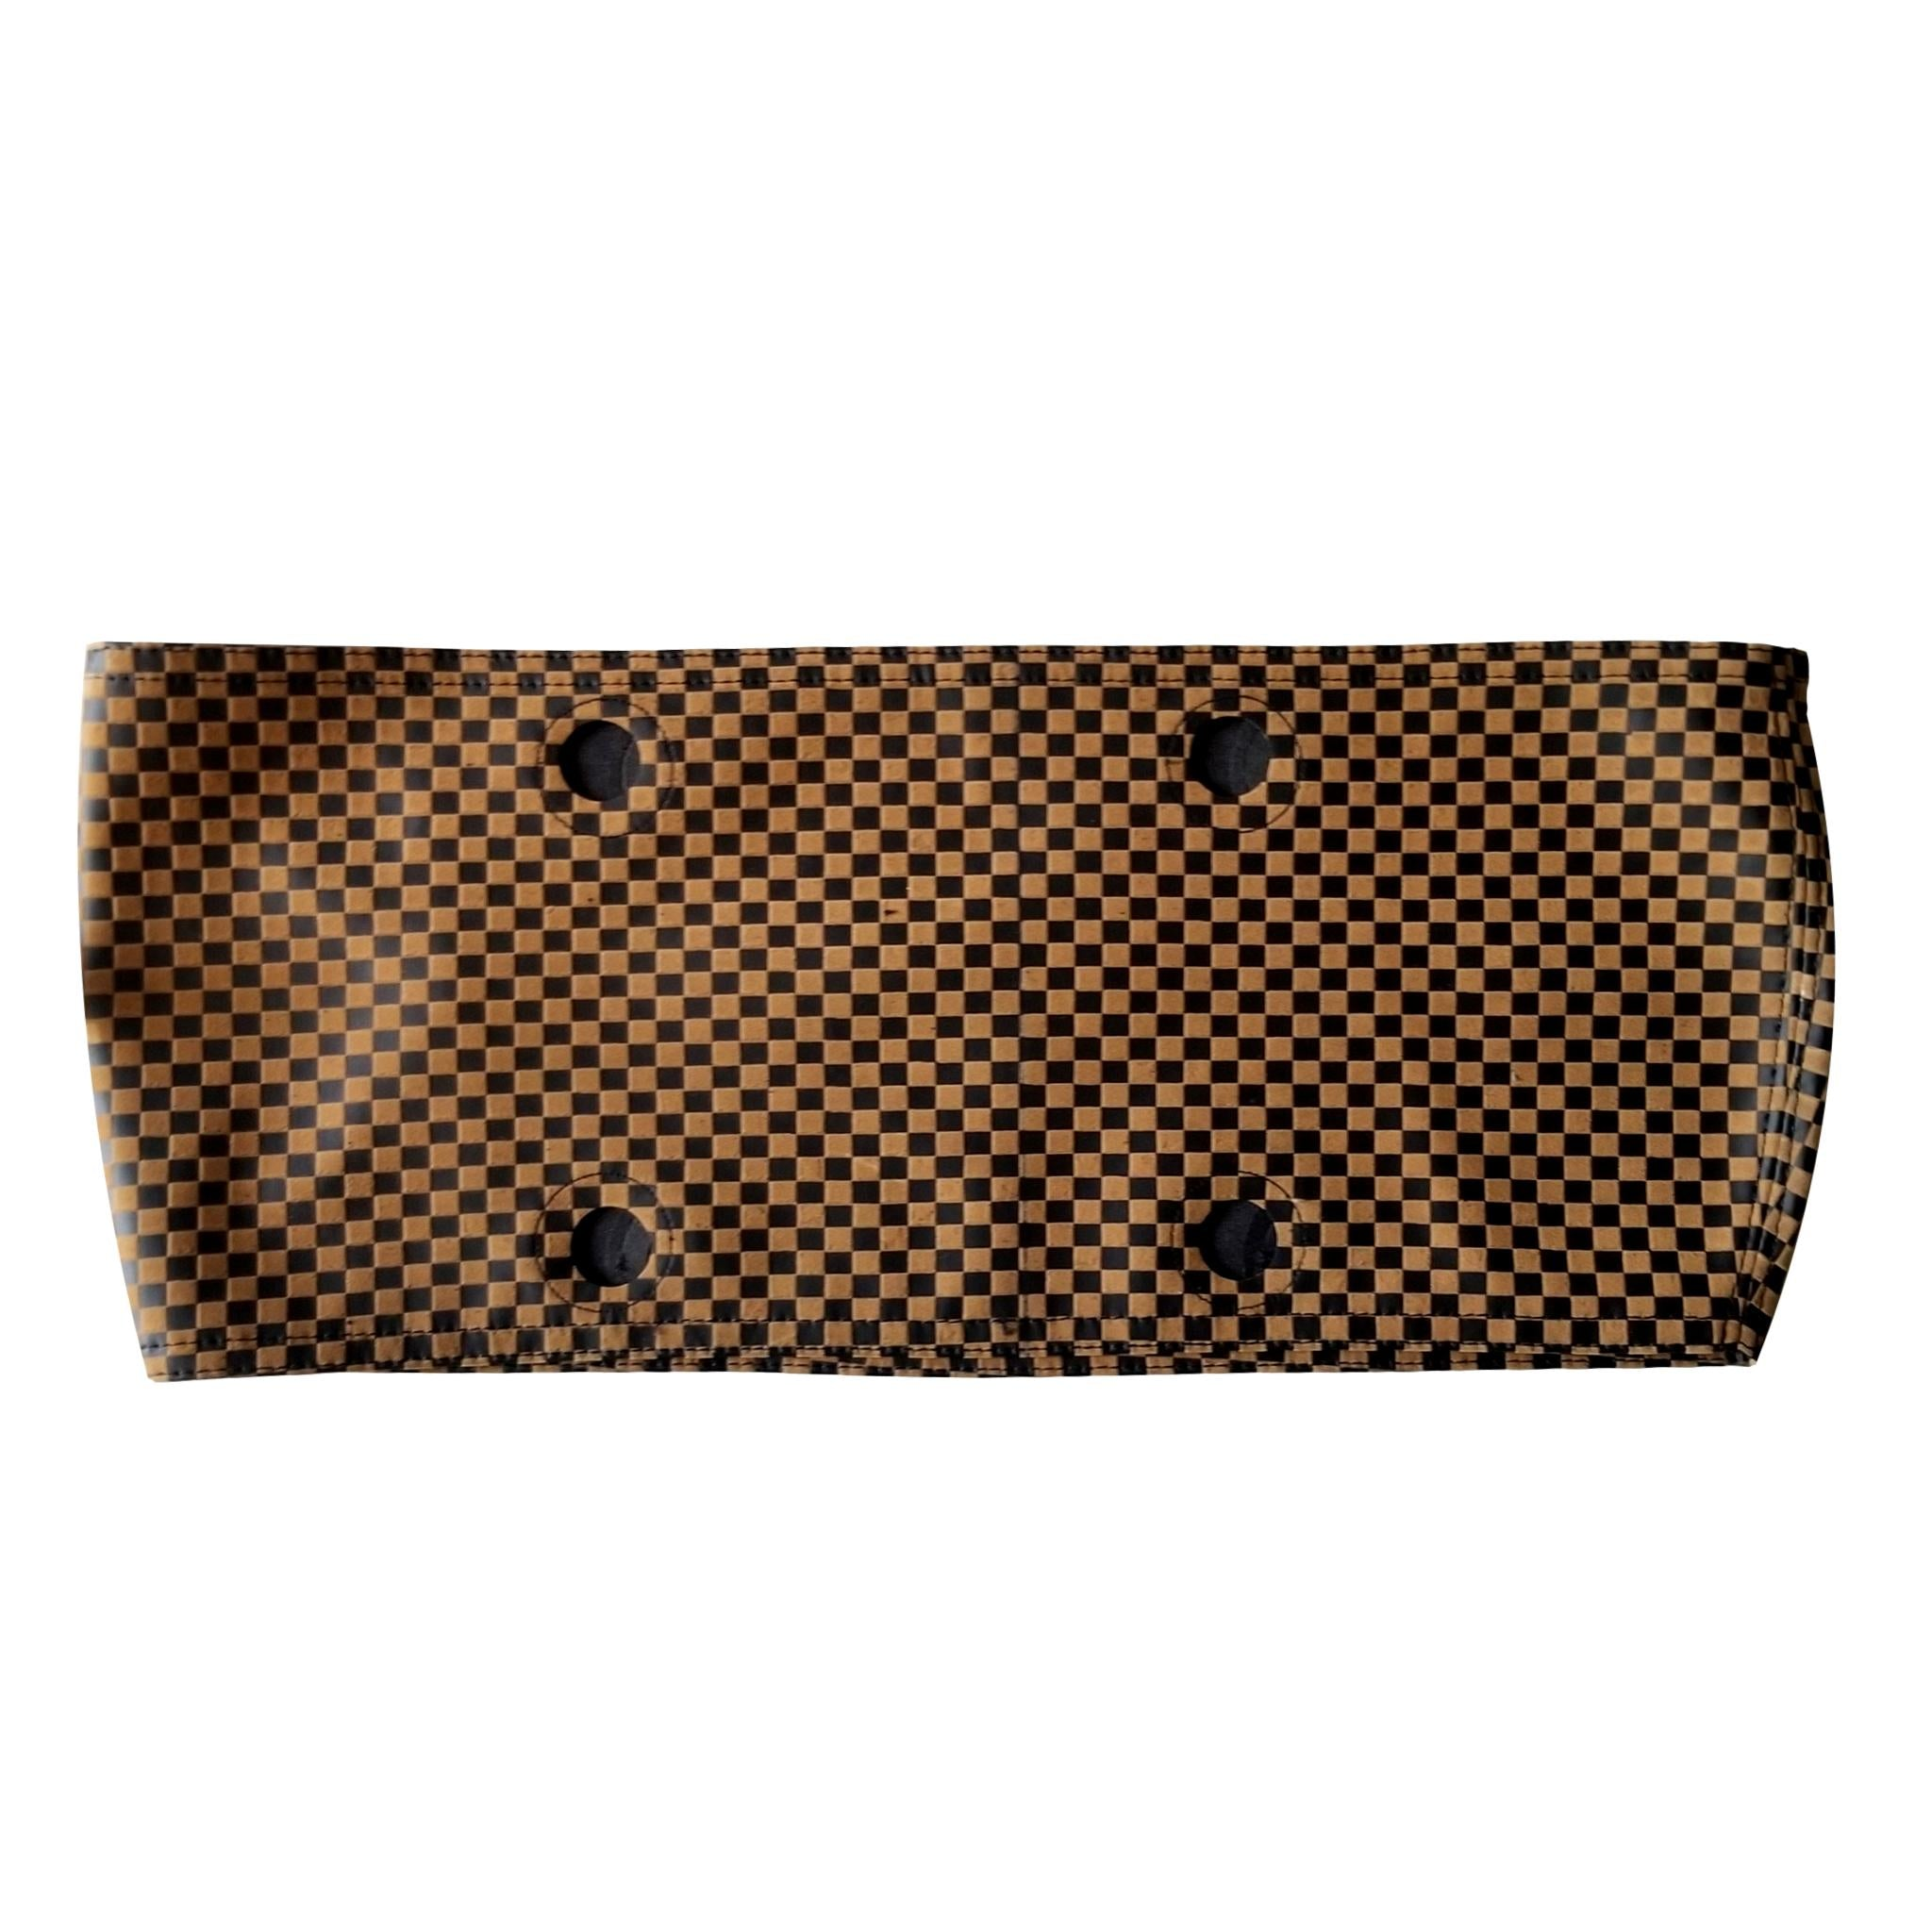 SLO Fashion Handbags. Faux Leather Black and Tan Checked Trim accessory